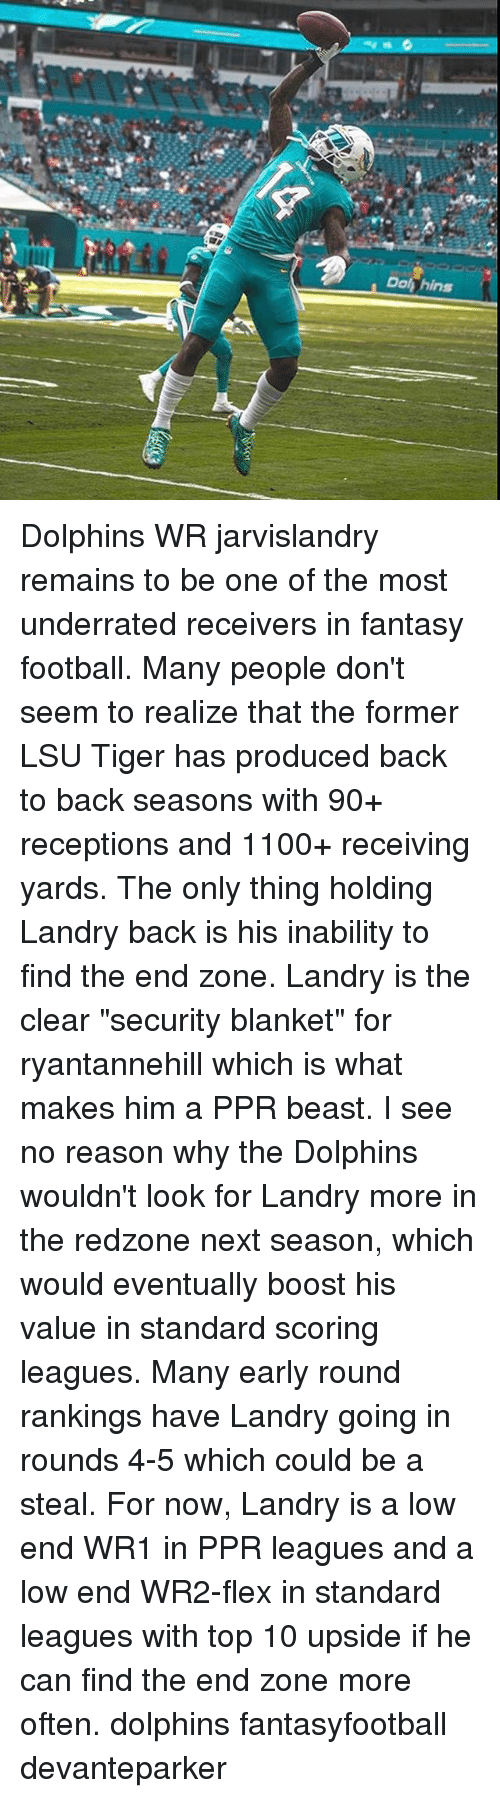 "lsu tigers: Dolphins Dolphins WR jarvislandry remains to be one of the most underrated receivers in fantasy football. Many people don't seem to realize that the former LSU Tiger has produced back to back seasons with 90+ receptions and 1100+ receiving yards. The only thing holding Landry back is his inability to find the end zone. Landry is the clear ""security blanket"" for ryantannehill which is what makes him a PPR beast. I see no reason why the Dolphins wouldn't look for Landry more in the redzone next season, which would eventually boost his value in standard scoring leagues. Many early round rankings have Landry going in rounds 4-5 which could be a steal. For now, Landry is a low end WR1 in PPR leagues and a low end WR2-flex in standard leagues with top 10 upside if he can find the end zone more often. dolphins fantasyfootball devanteparker"